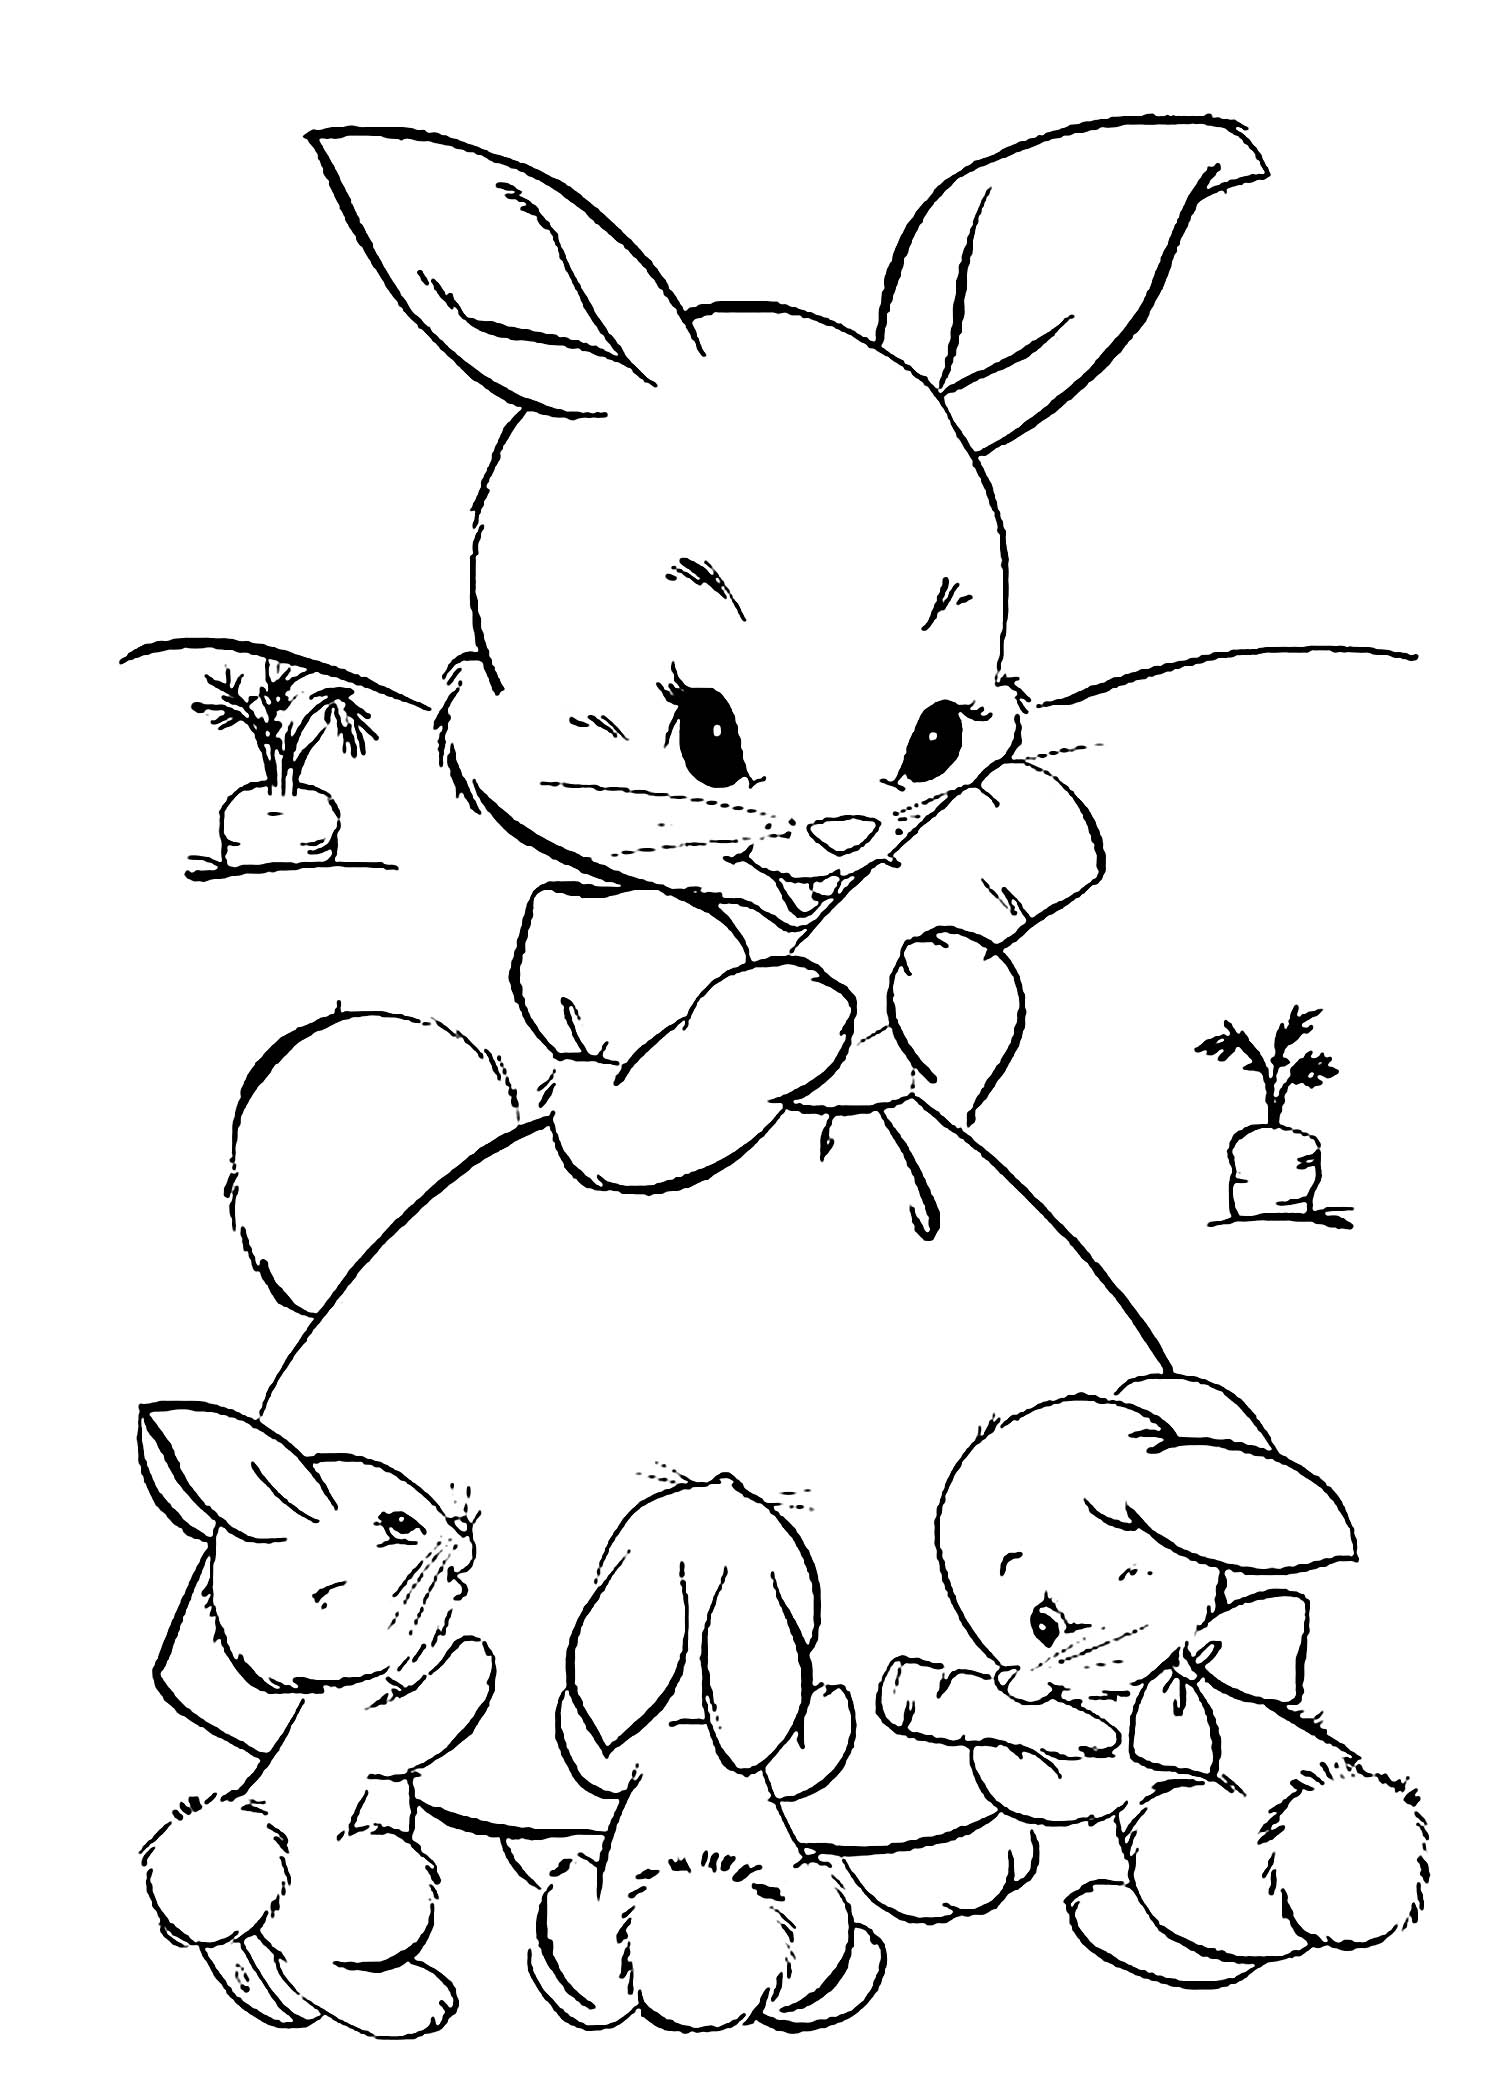 bunny picture to color rabbit to color for kids rabbit kids coloring pages color bunny to picture